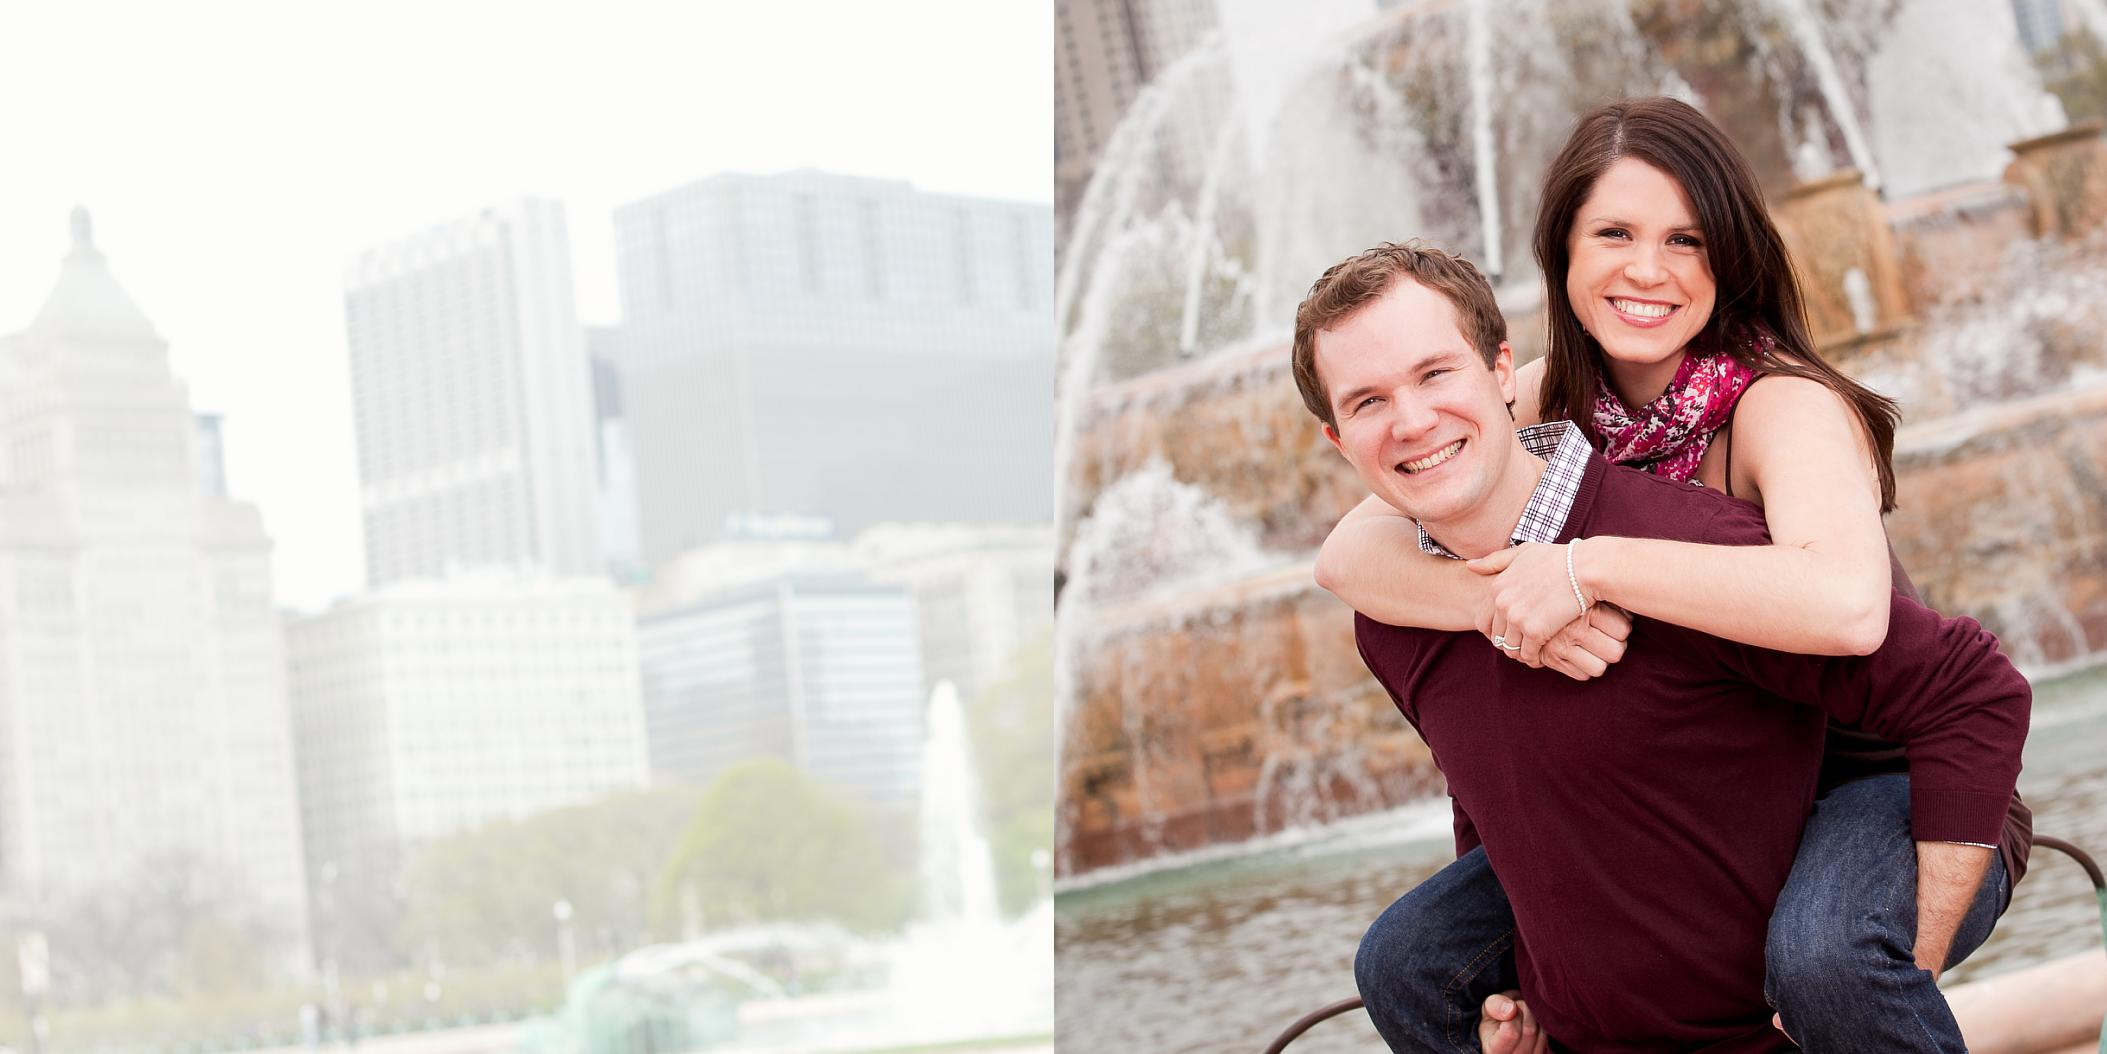 schmidtphoto-wedding-photography-katie-chad-chicago 010 (Sides 18-19)